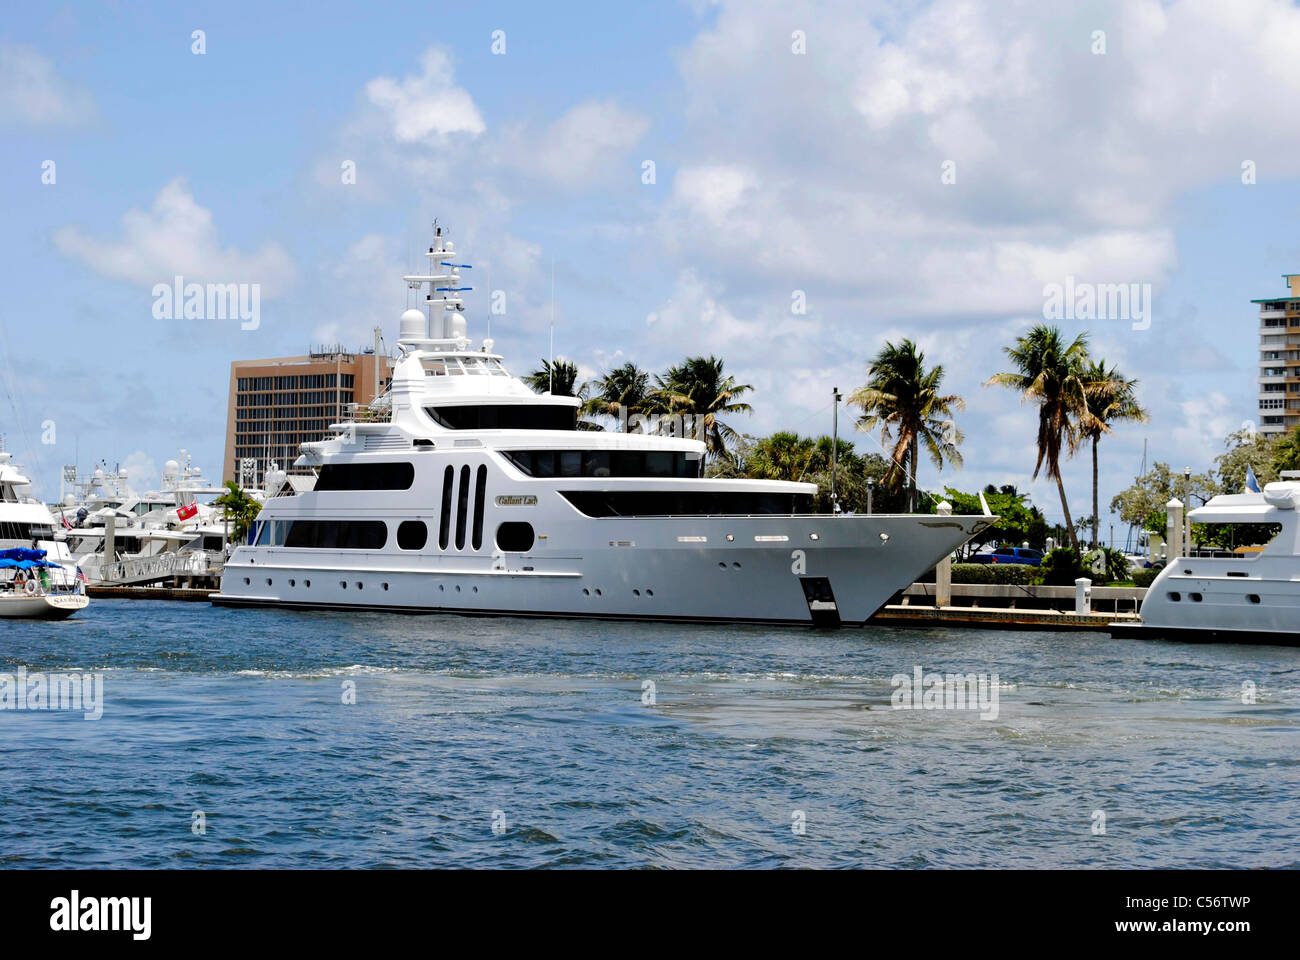 Galant lady yacht in Fort Lauderdale Florida - Stock Image